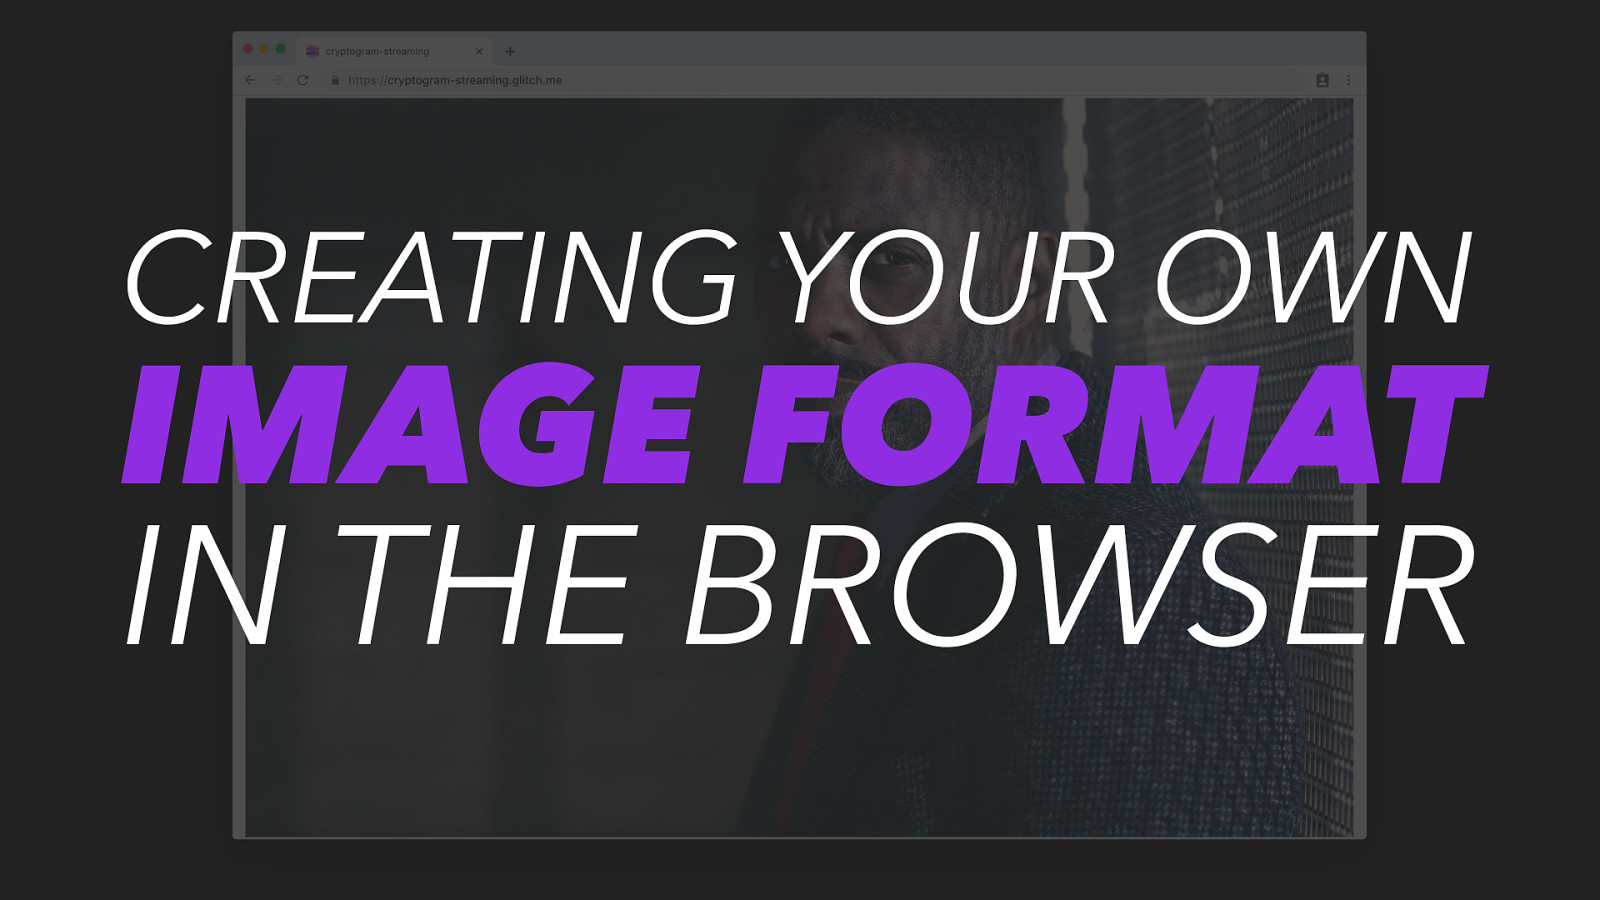 Creating Your Own Image Format In The Browser